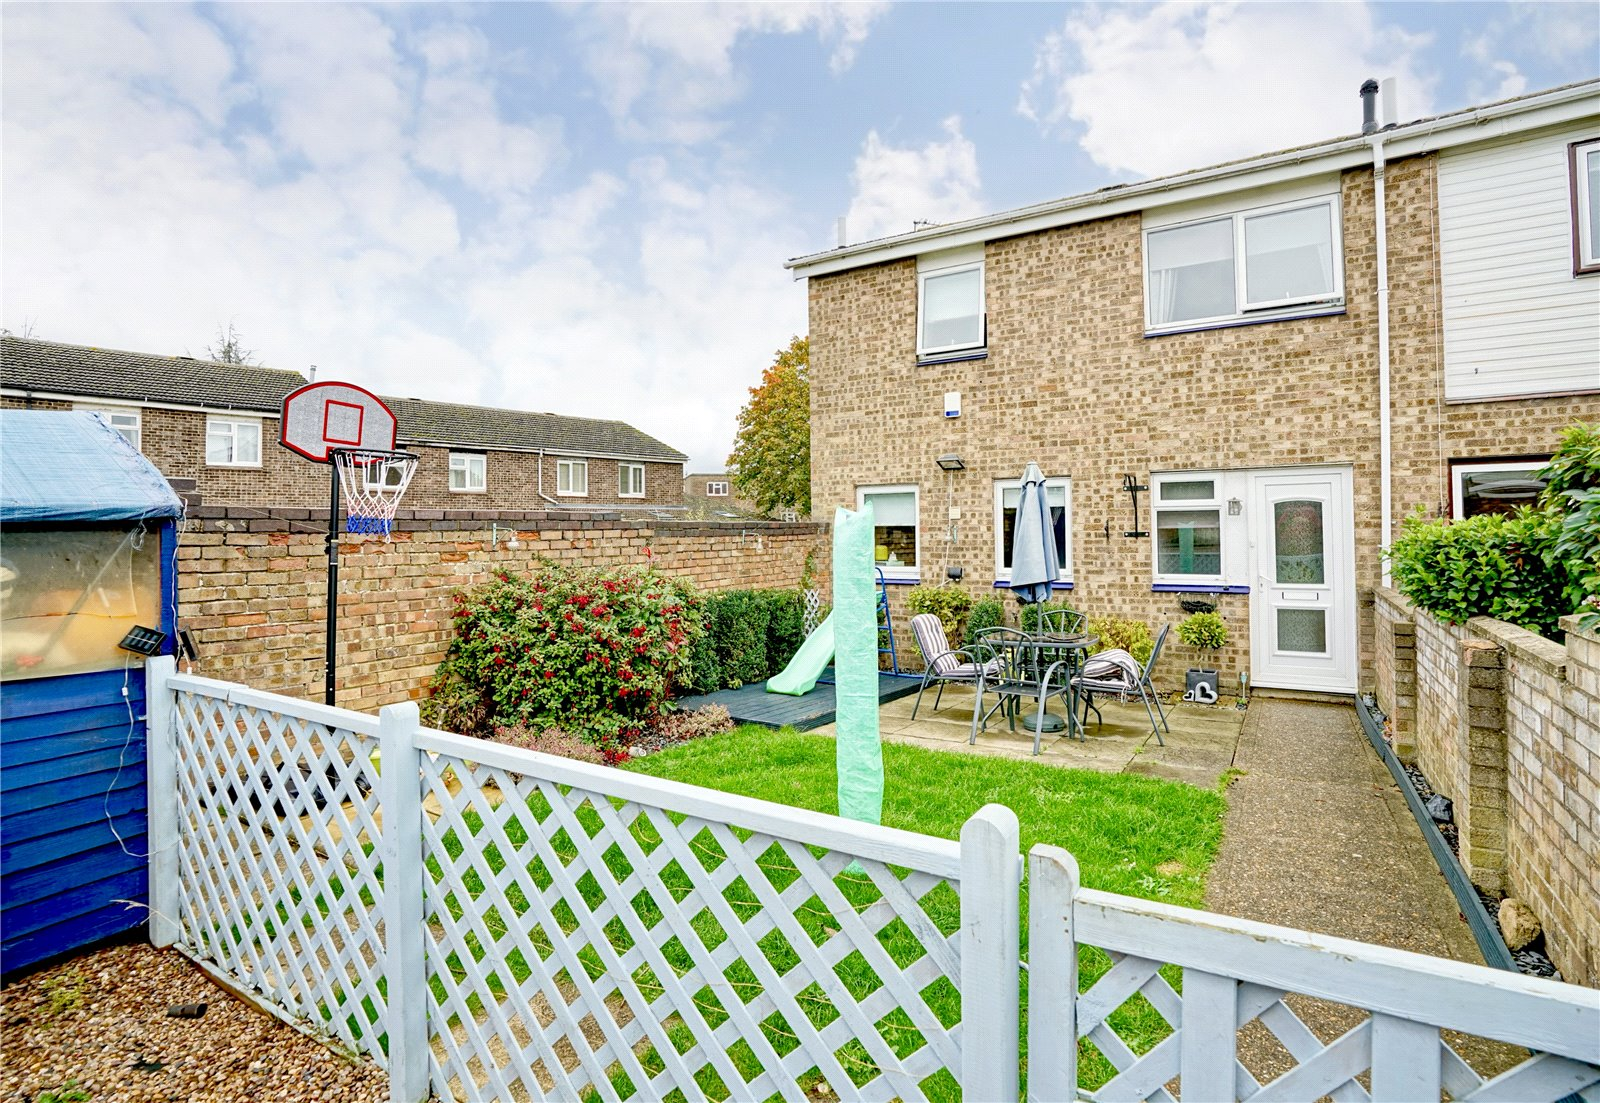 3 bed house for sale in Viscount Court, Eaton Socon, PE19